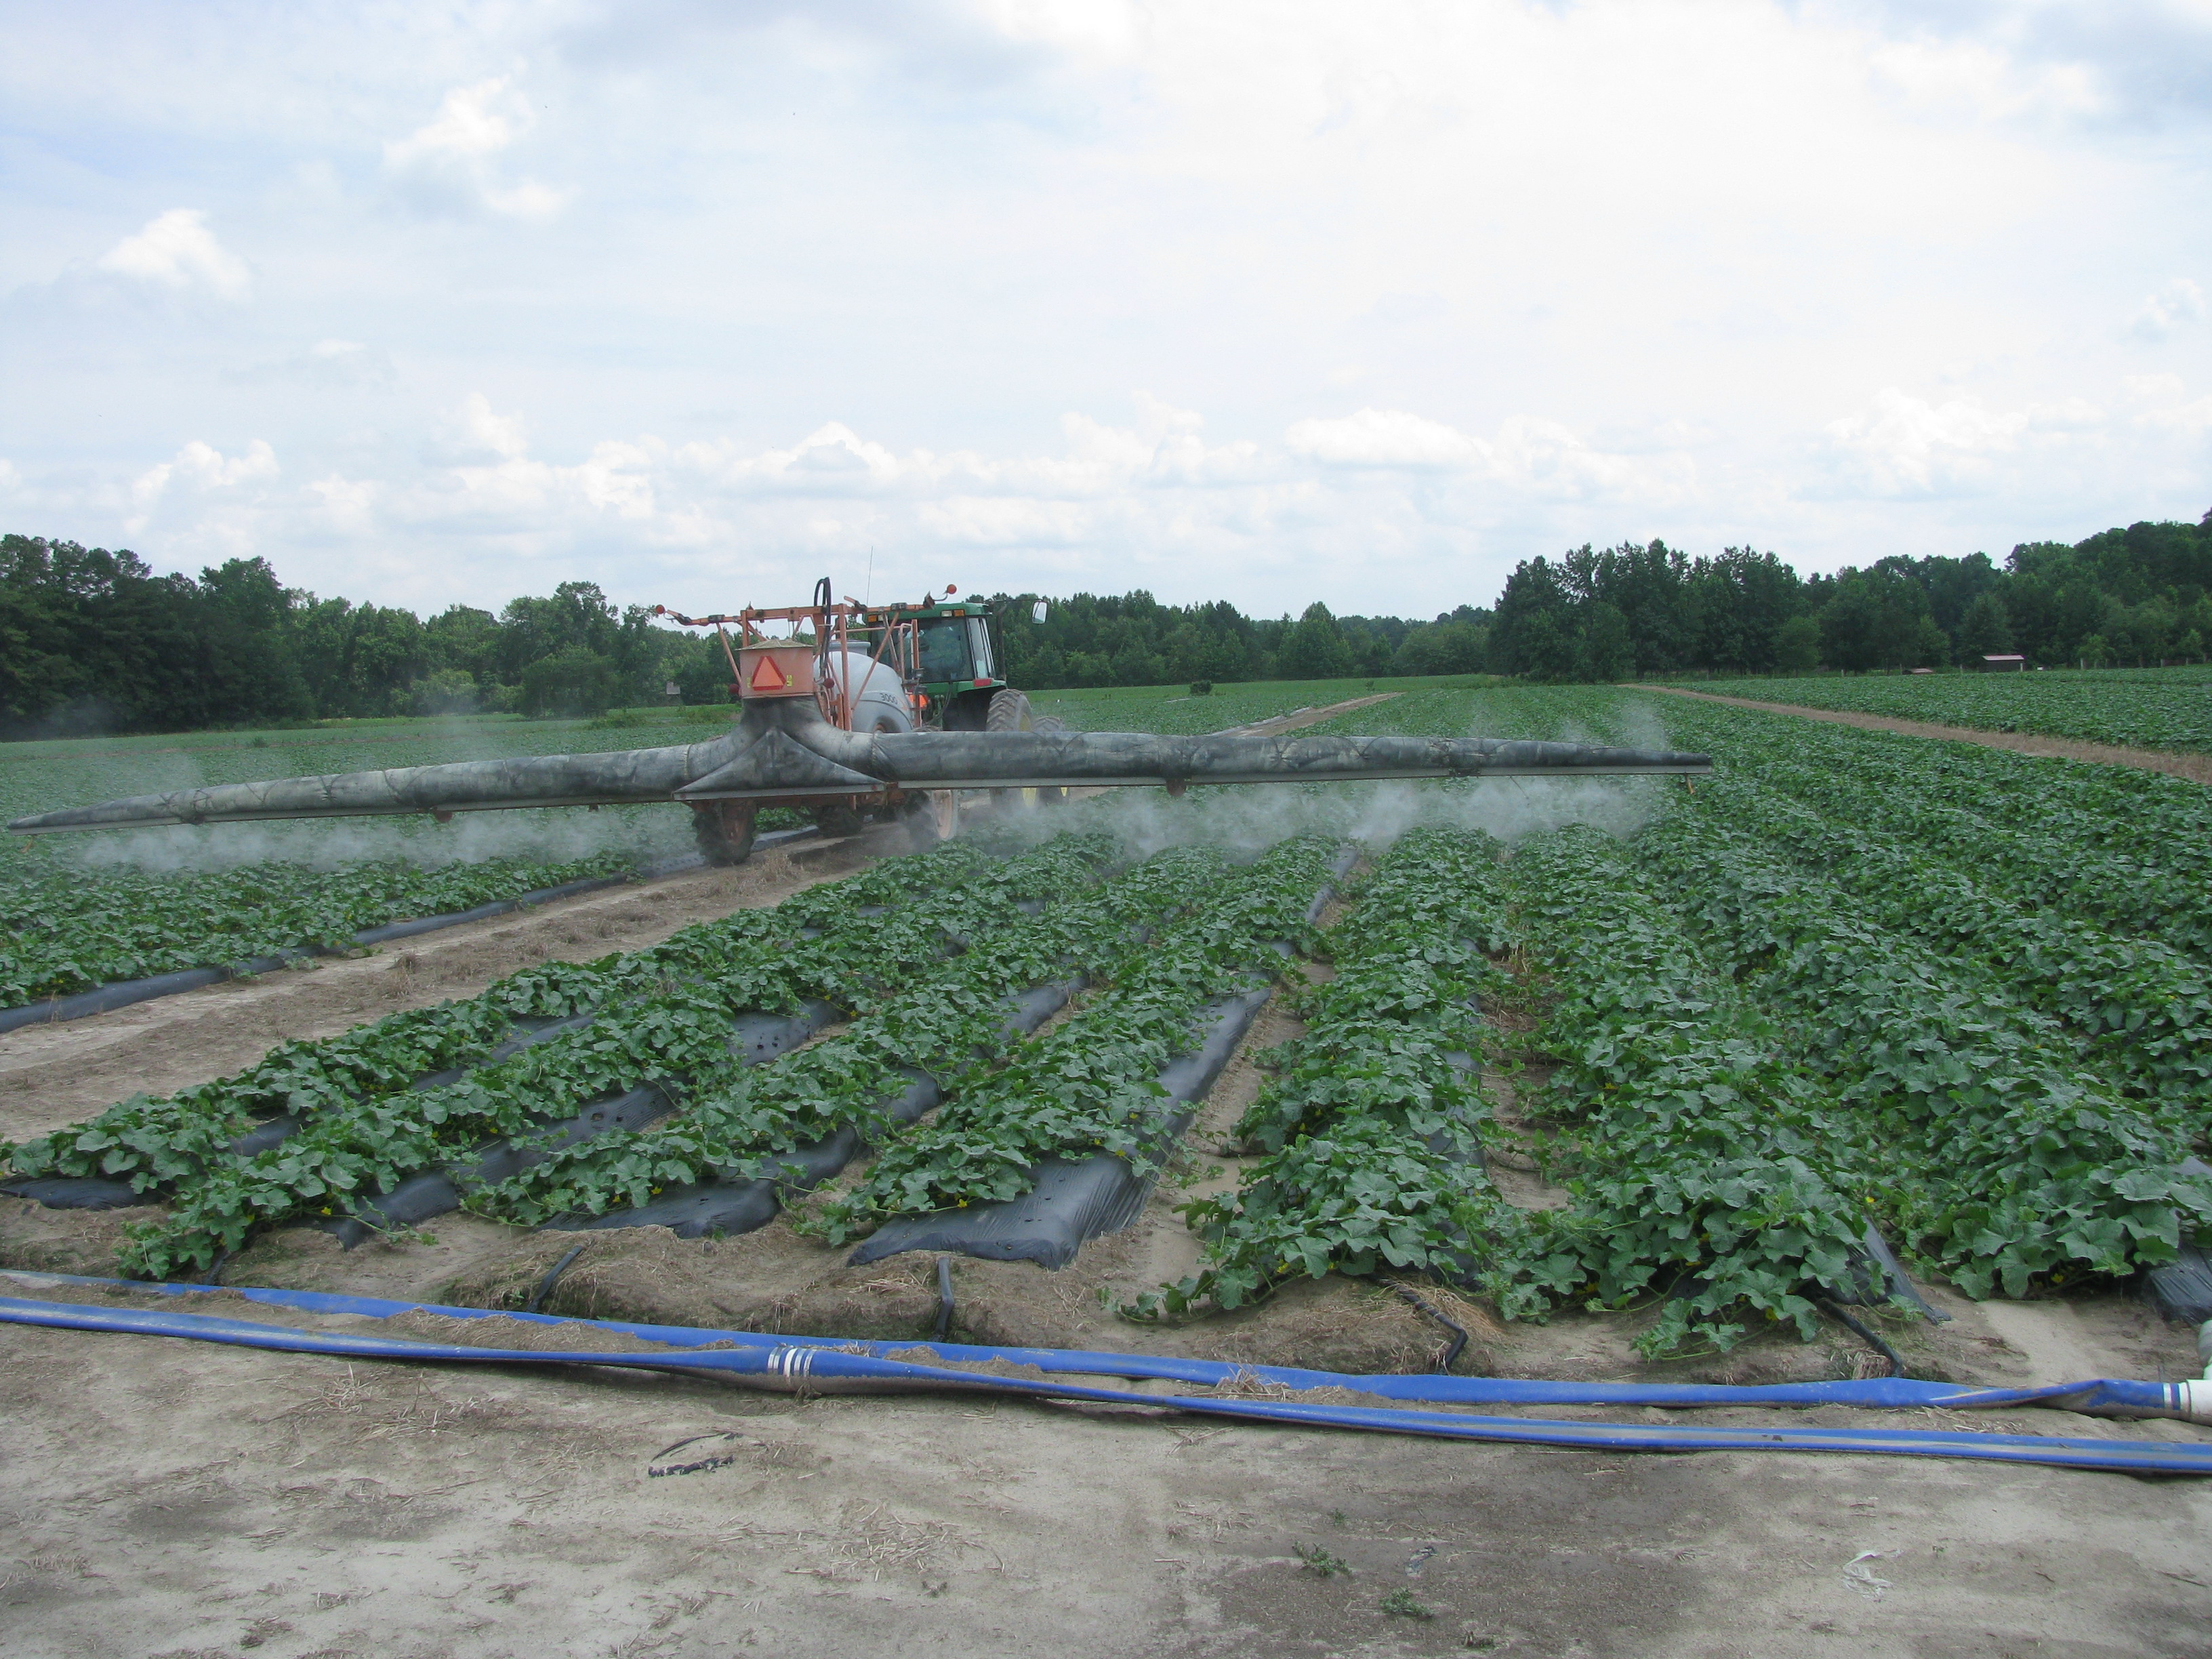 An important ingredient for Vegetable production - a good sprayer